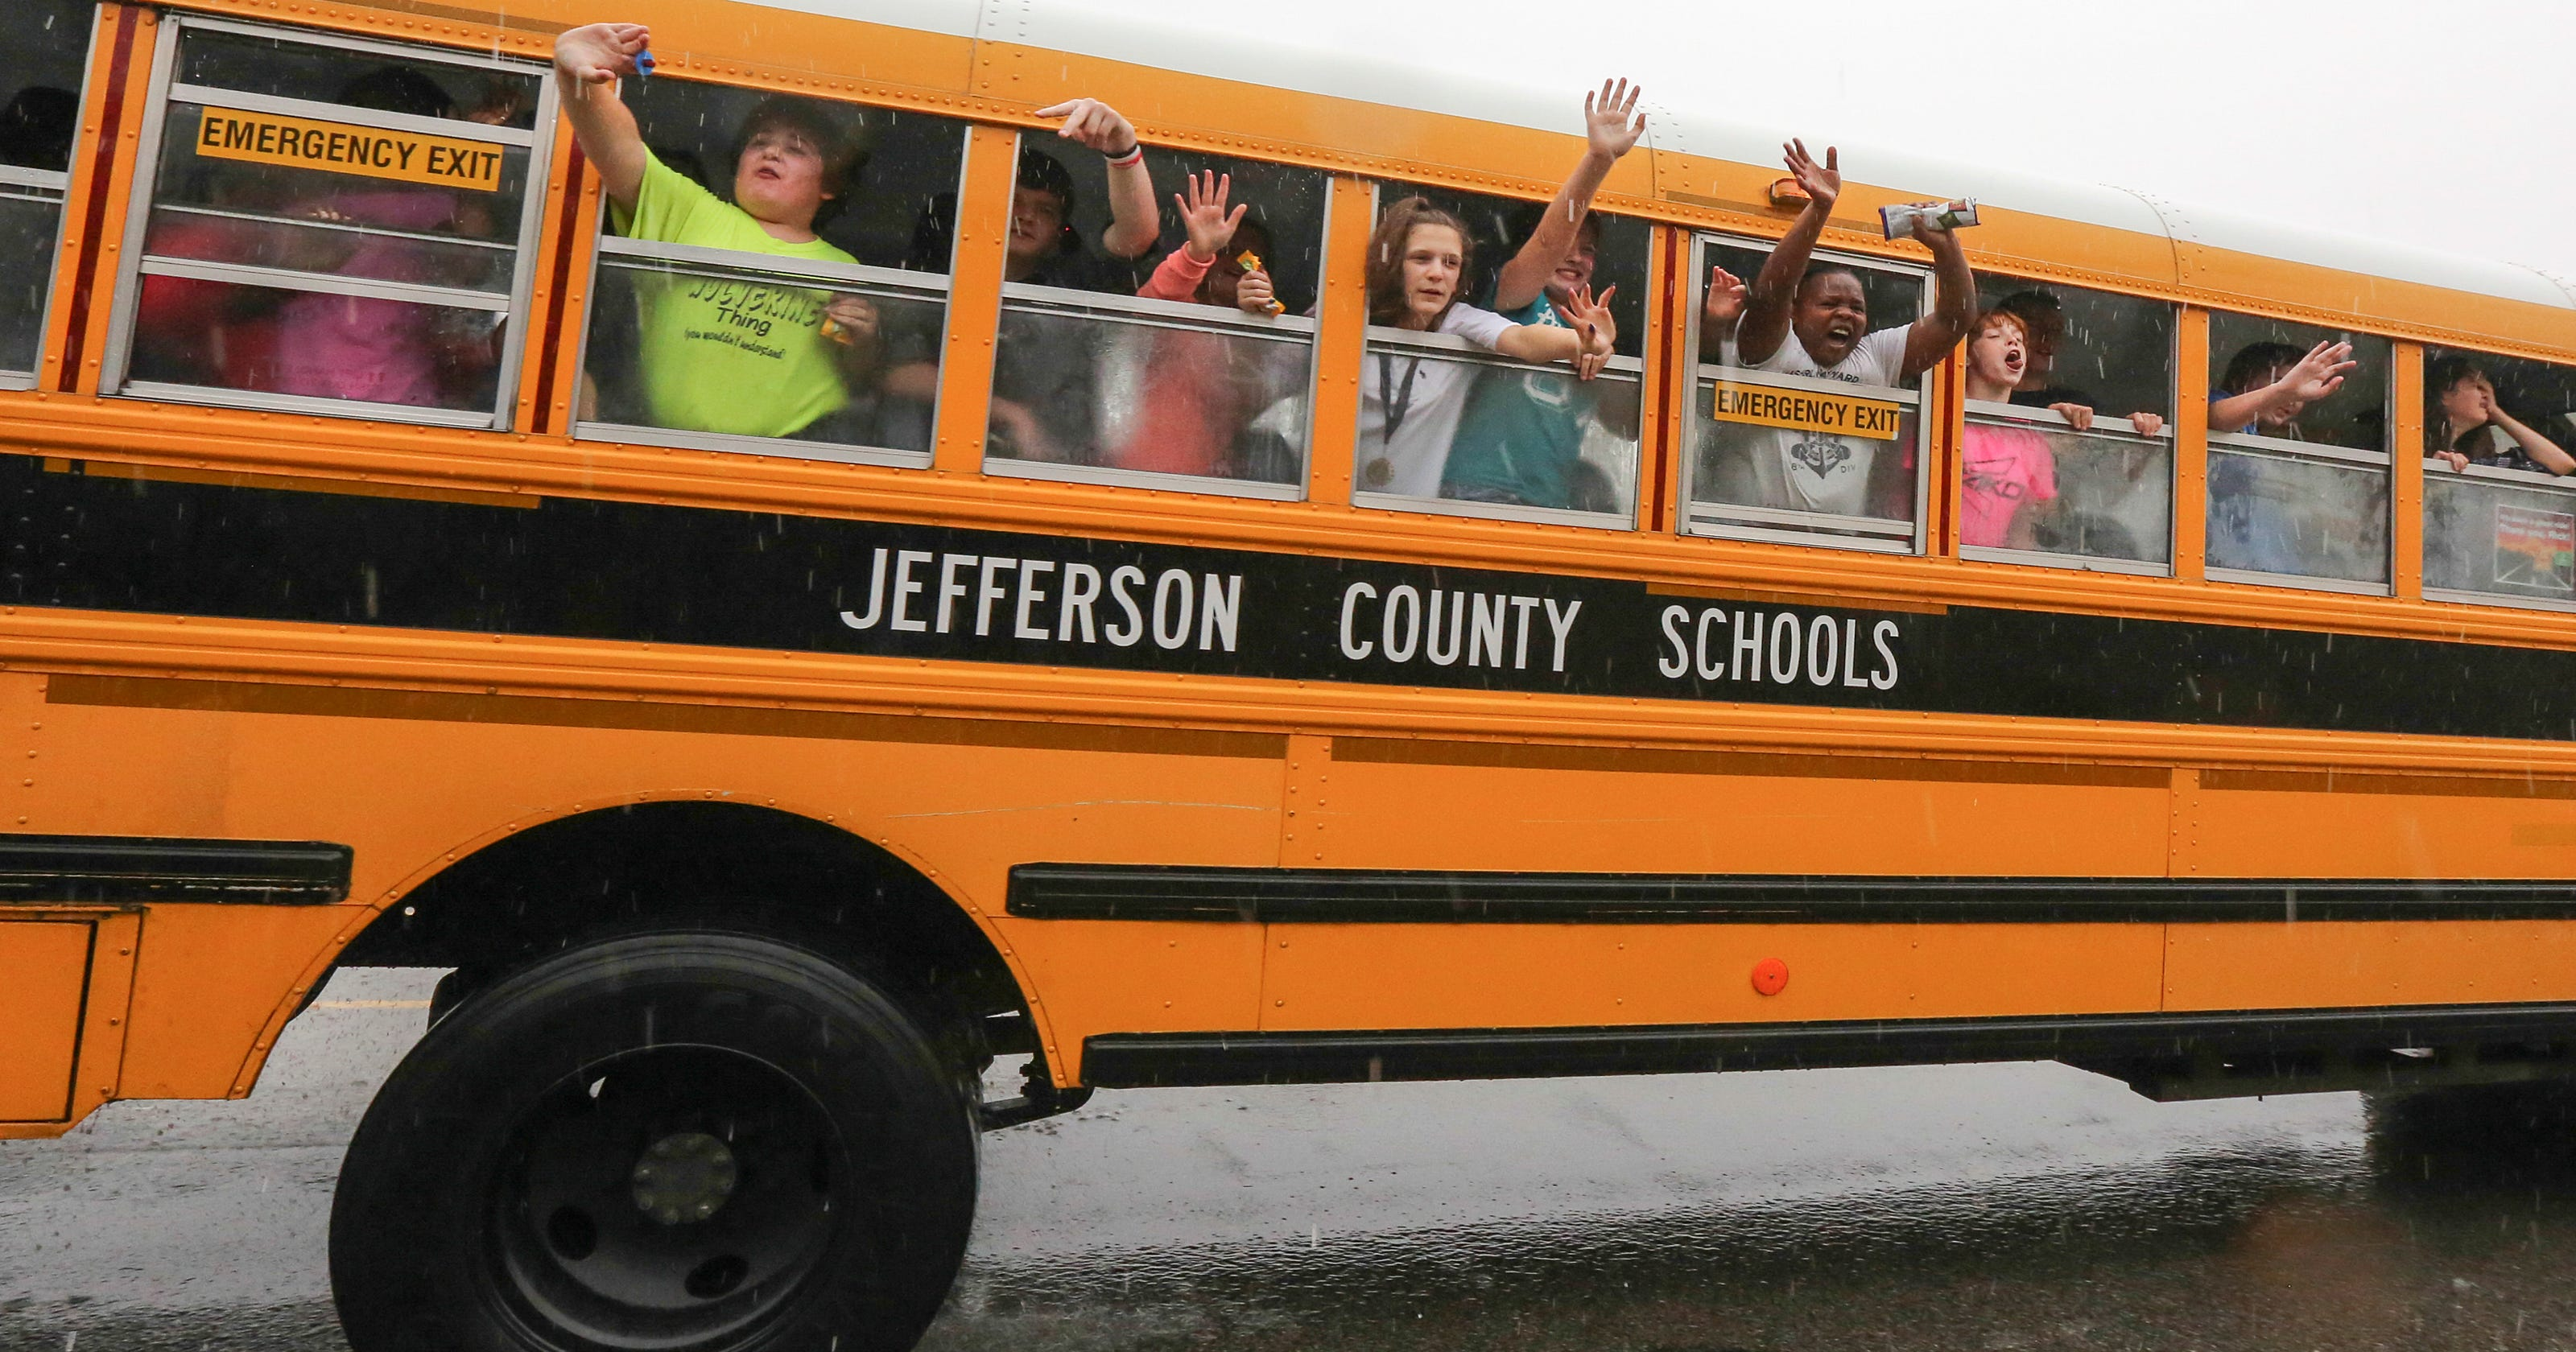 School's out forever at Frost Middle building